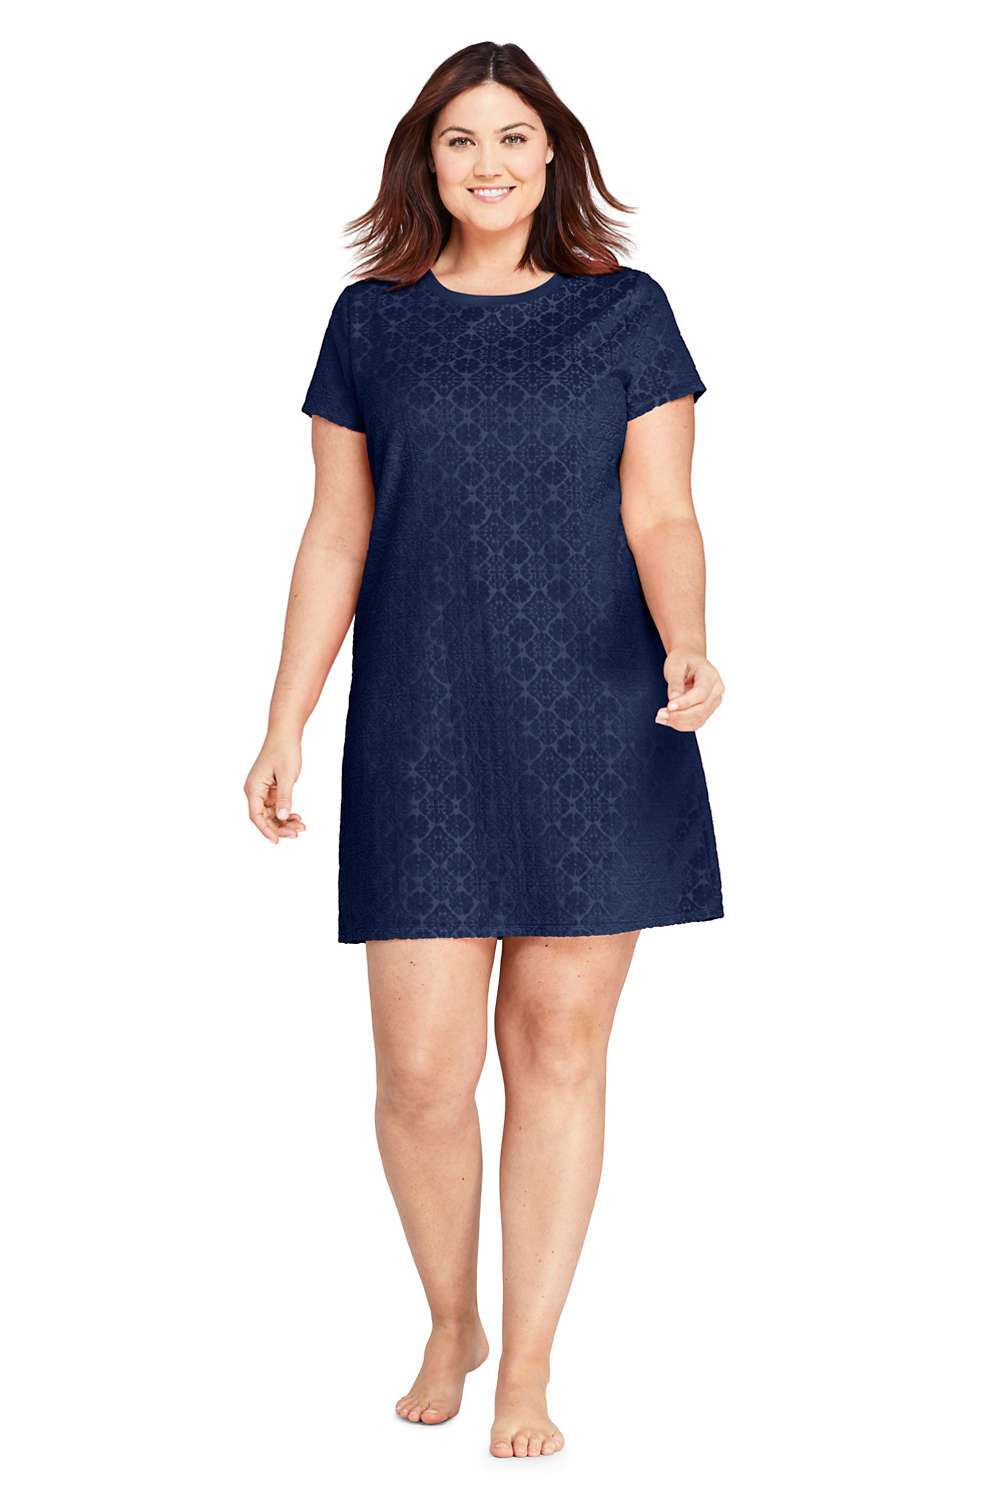 1551dfdf11 Women's Plus Size Jacquard Terry T-Shirt Dress Swim Cover-up from Lands' End